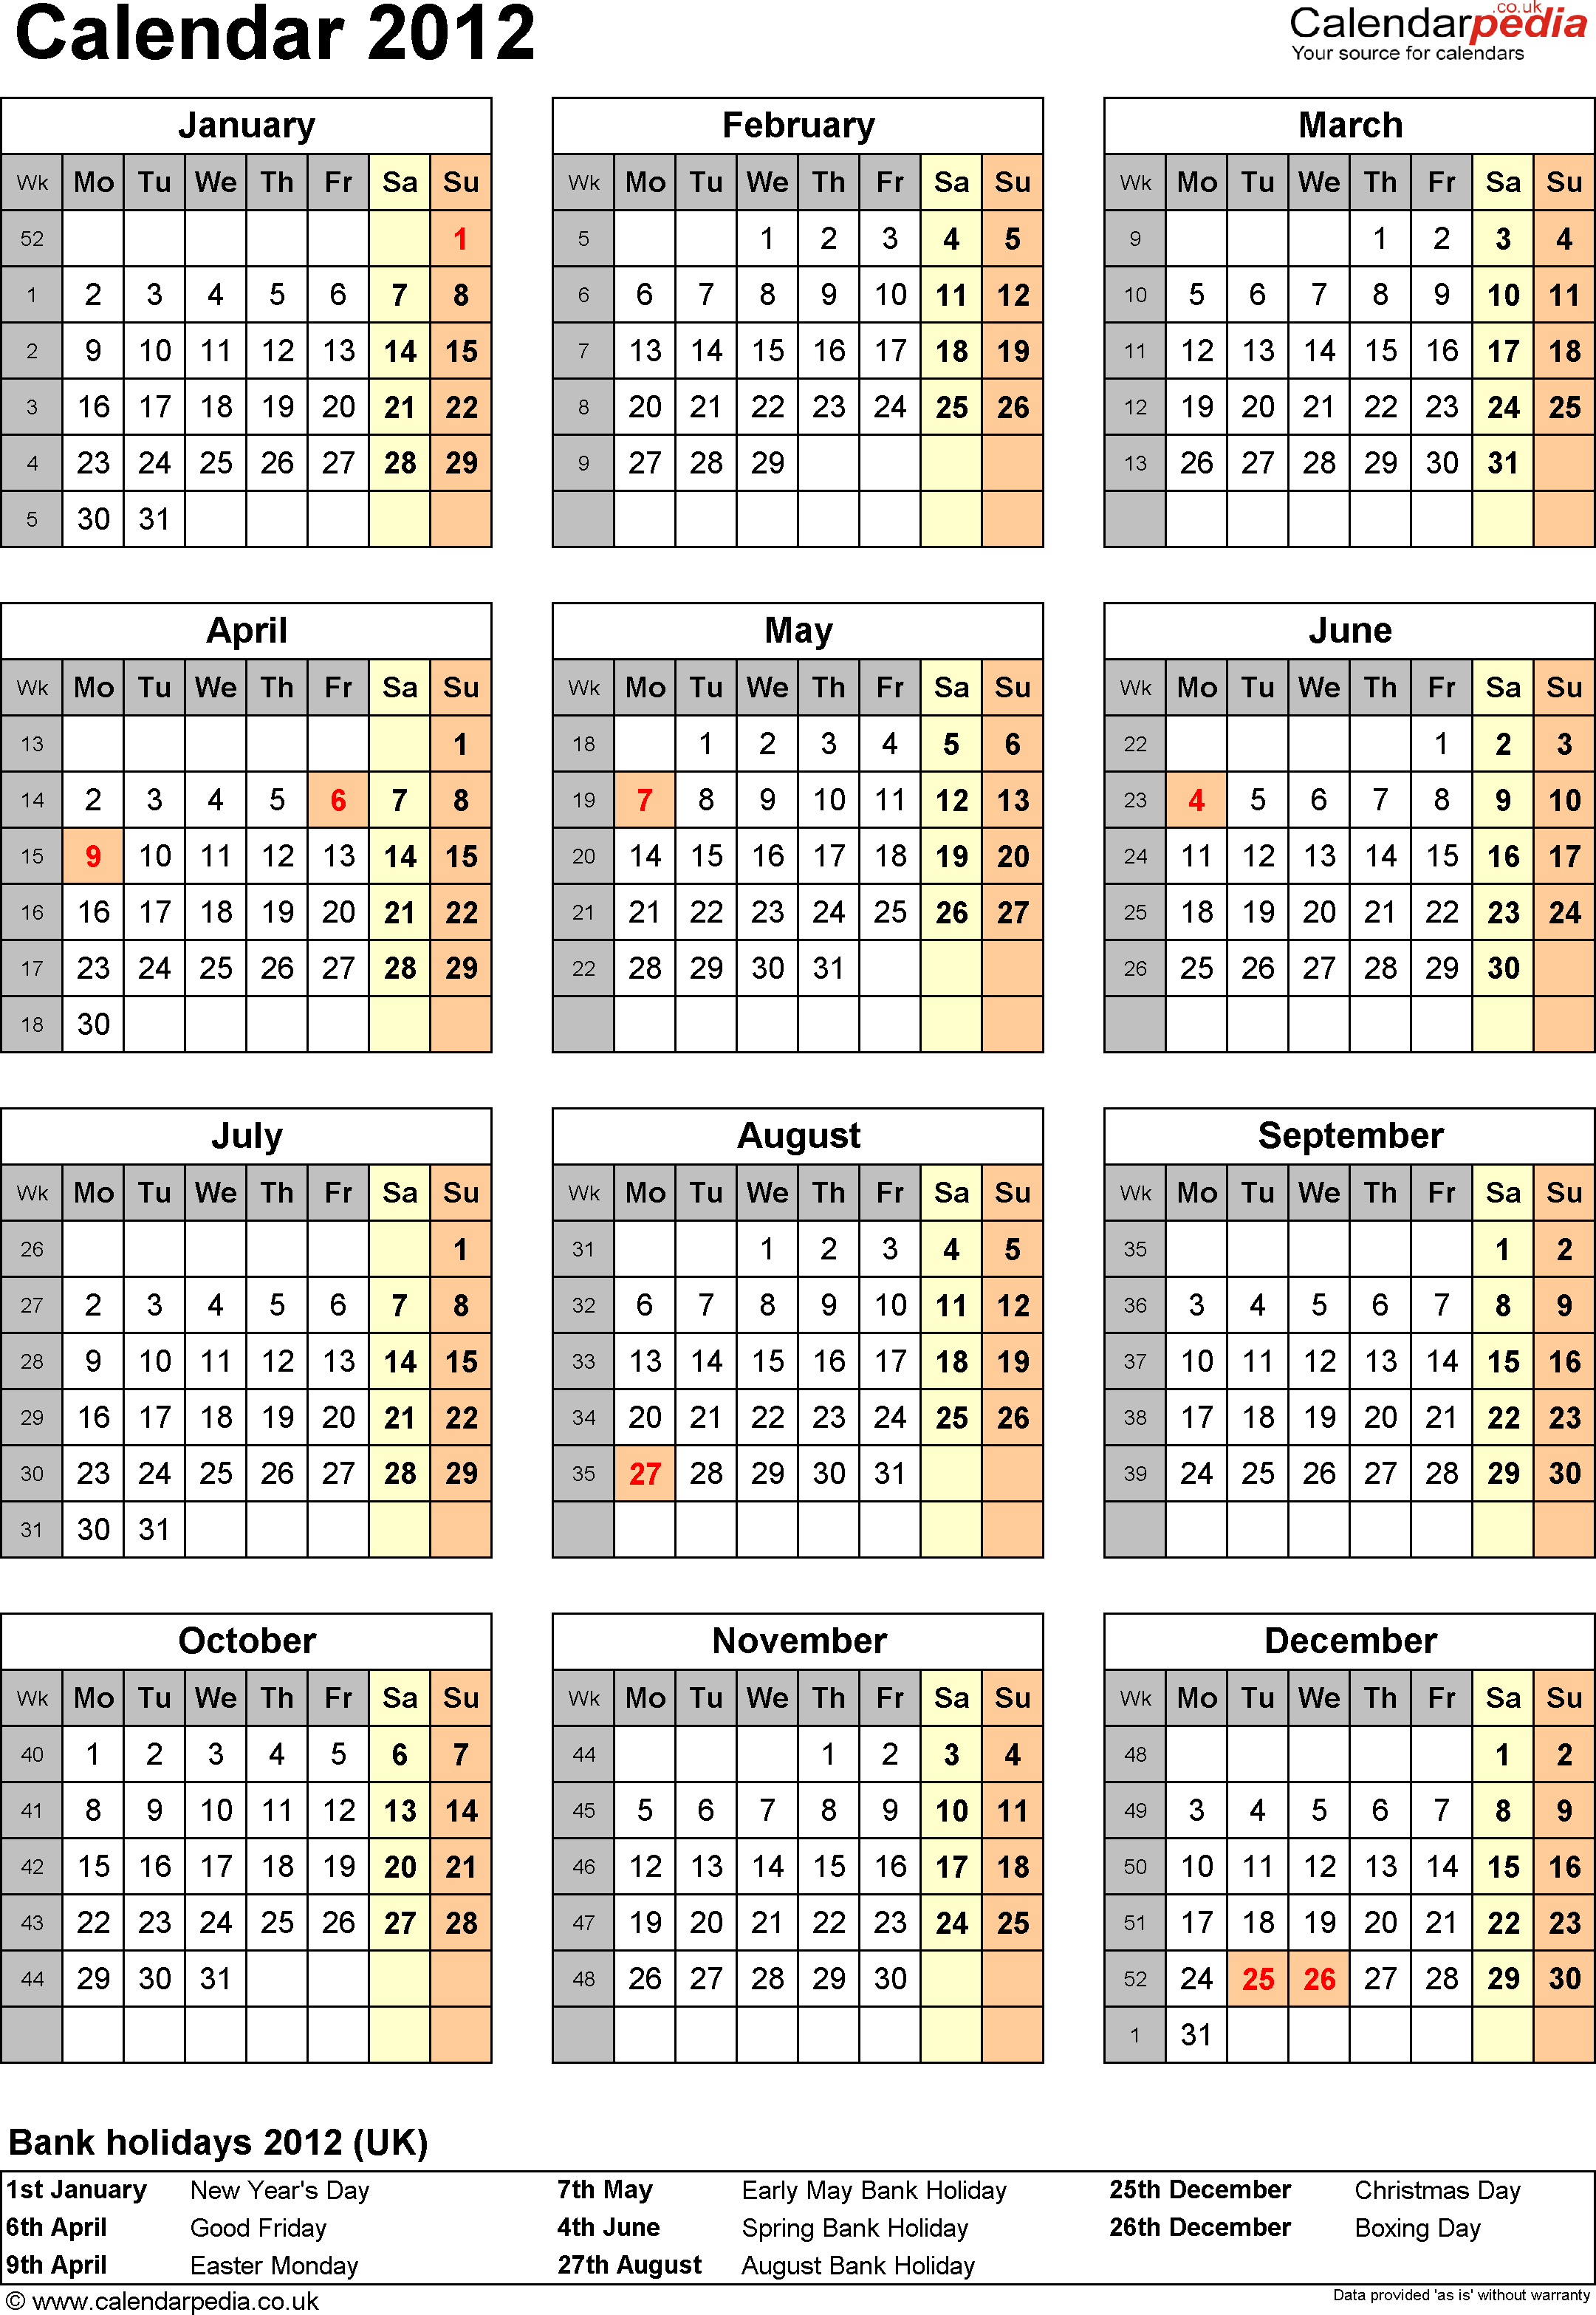 Template 11: Yearly calendar 2012 as PDF template, portrait orientation, one A4 page